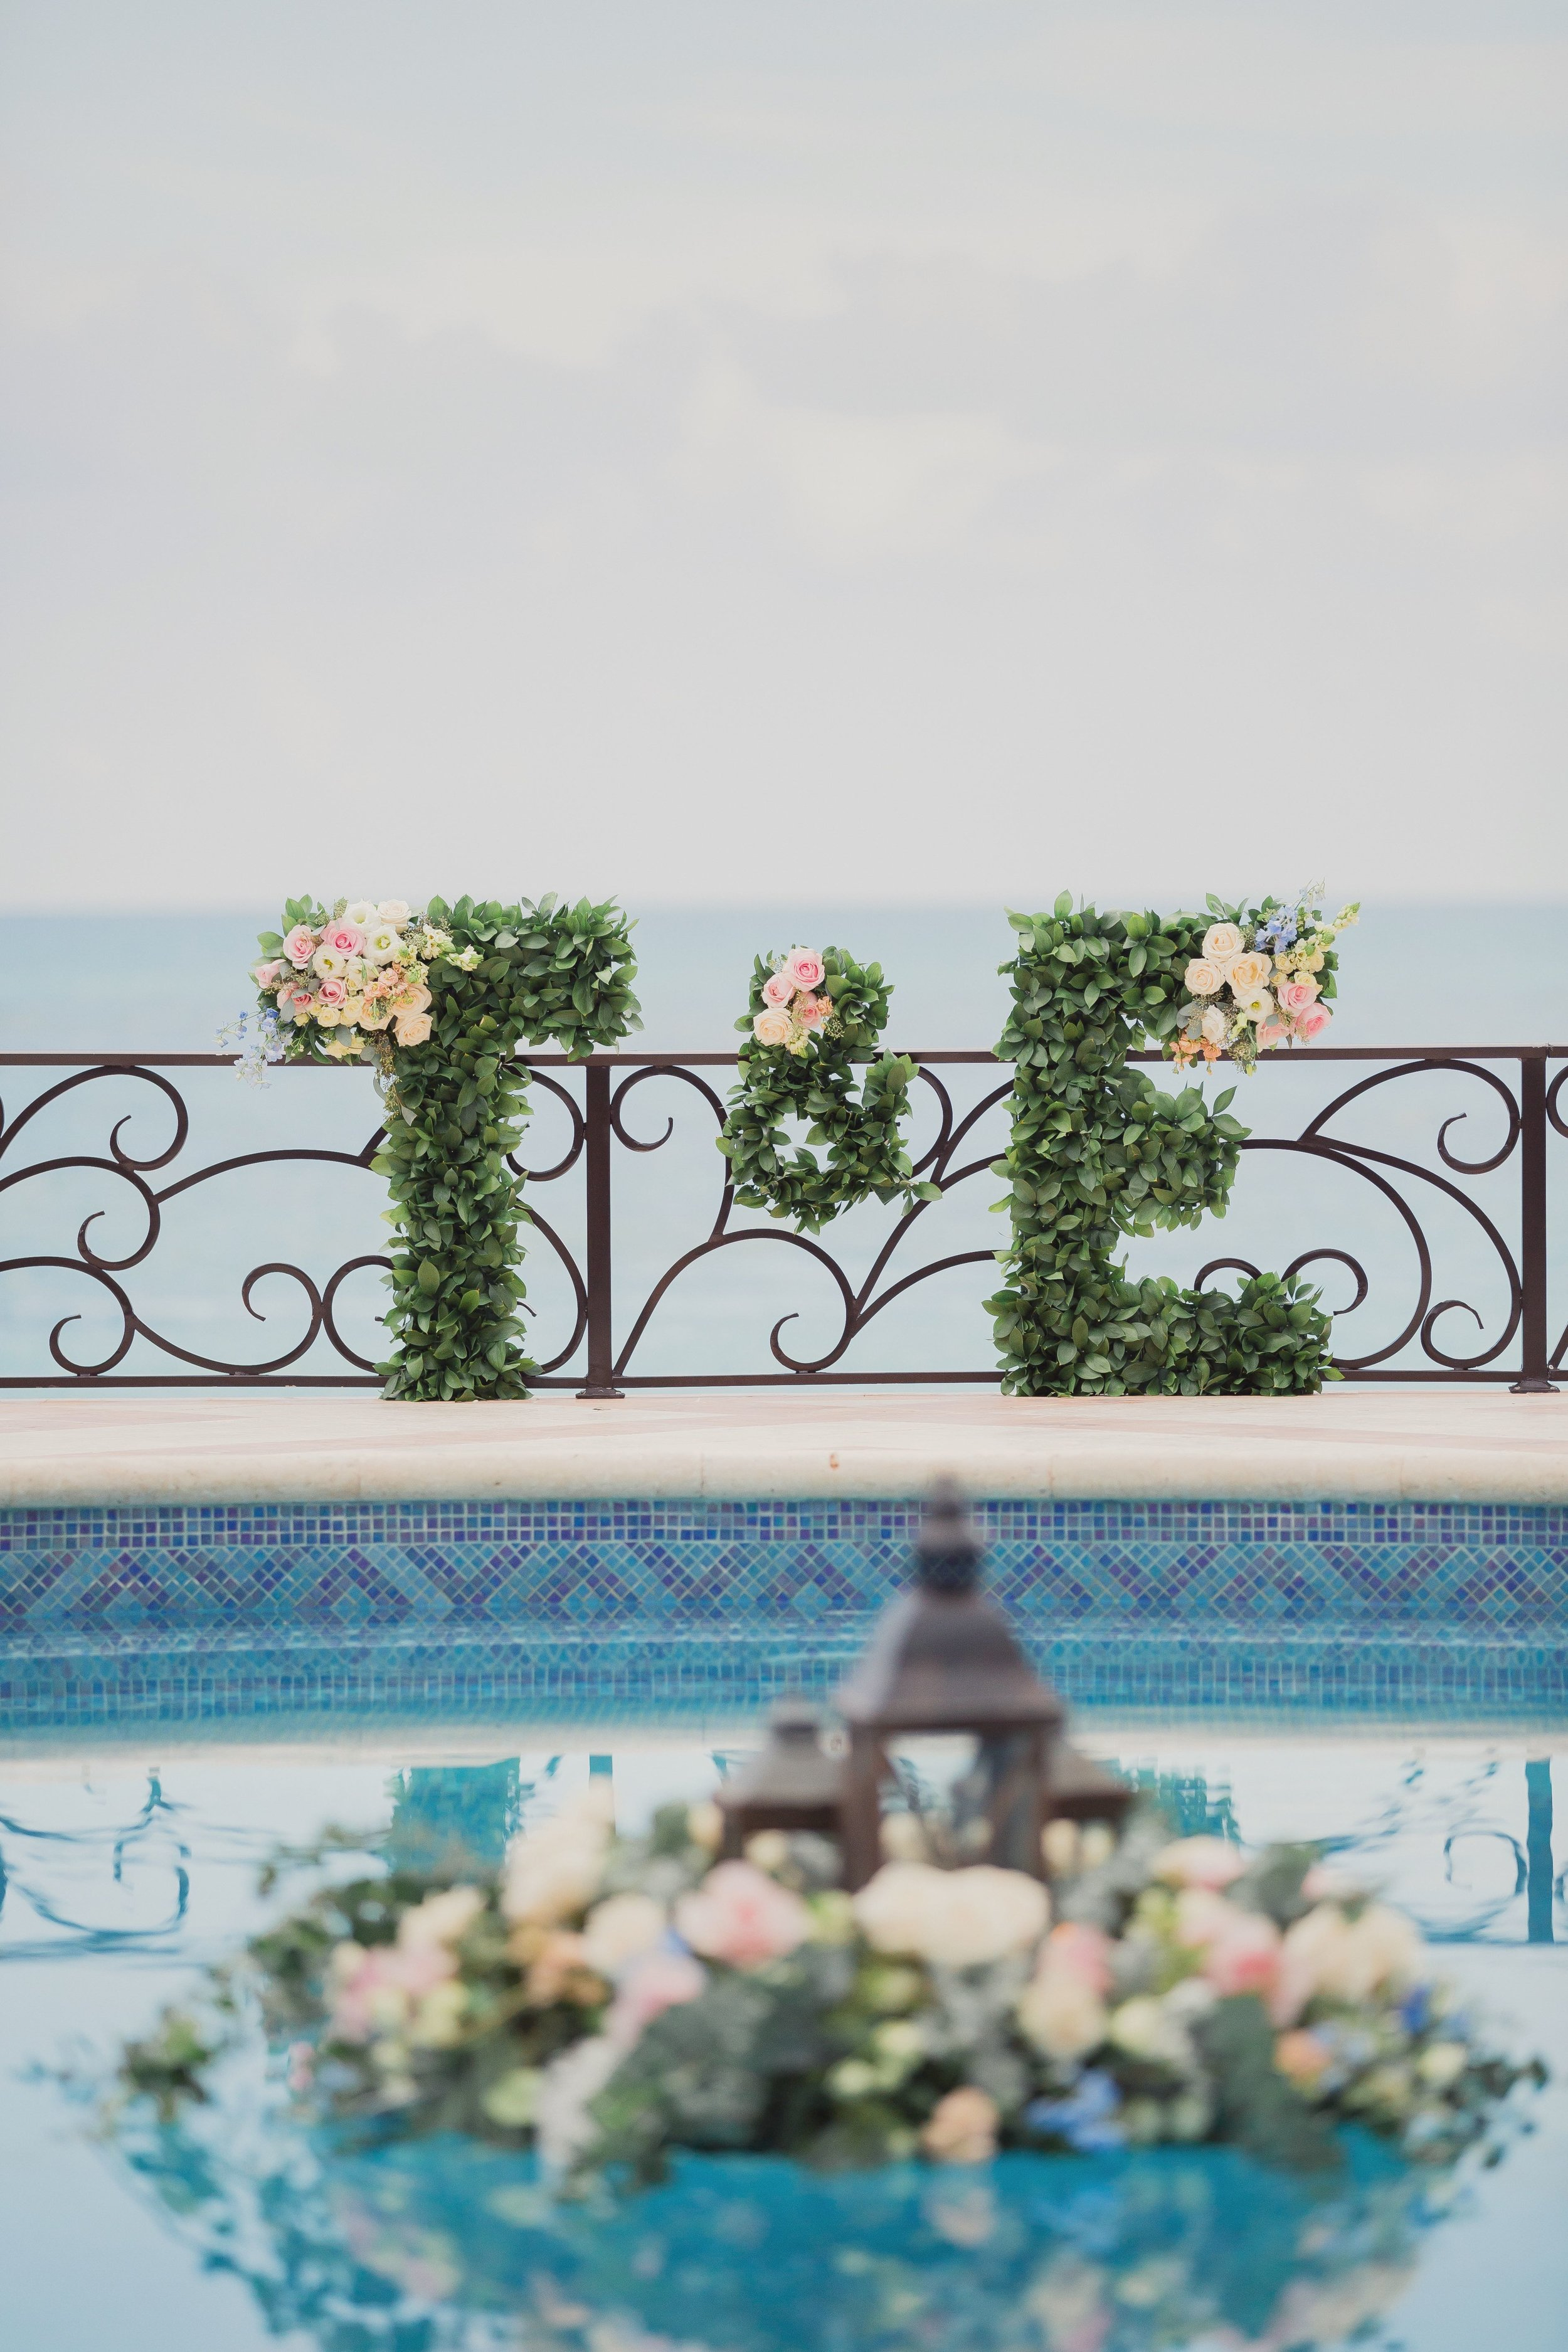 cancun-wedding-venue-villa-la-joya-18 copy-websize.jpg